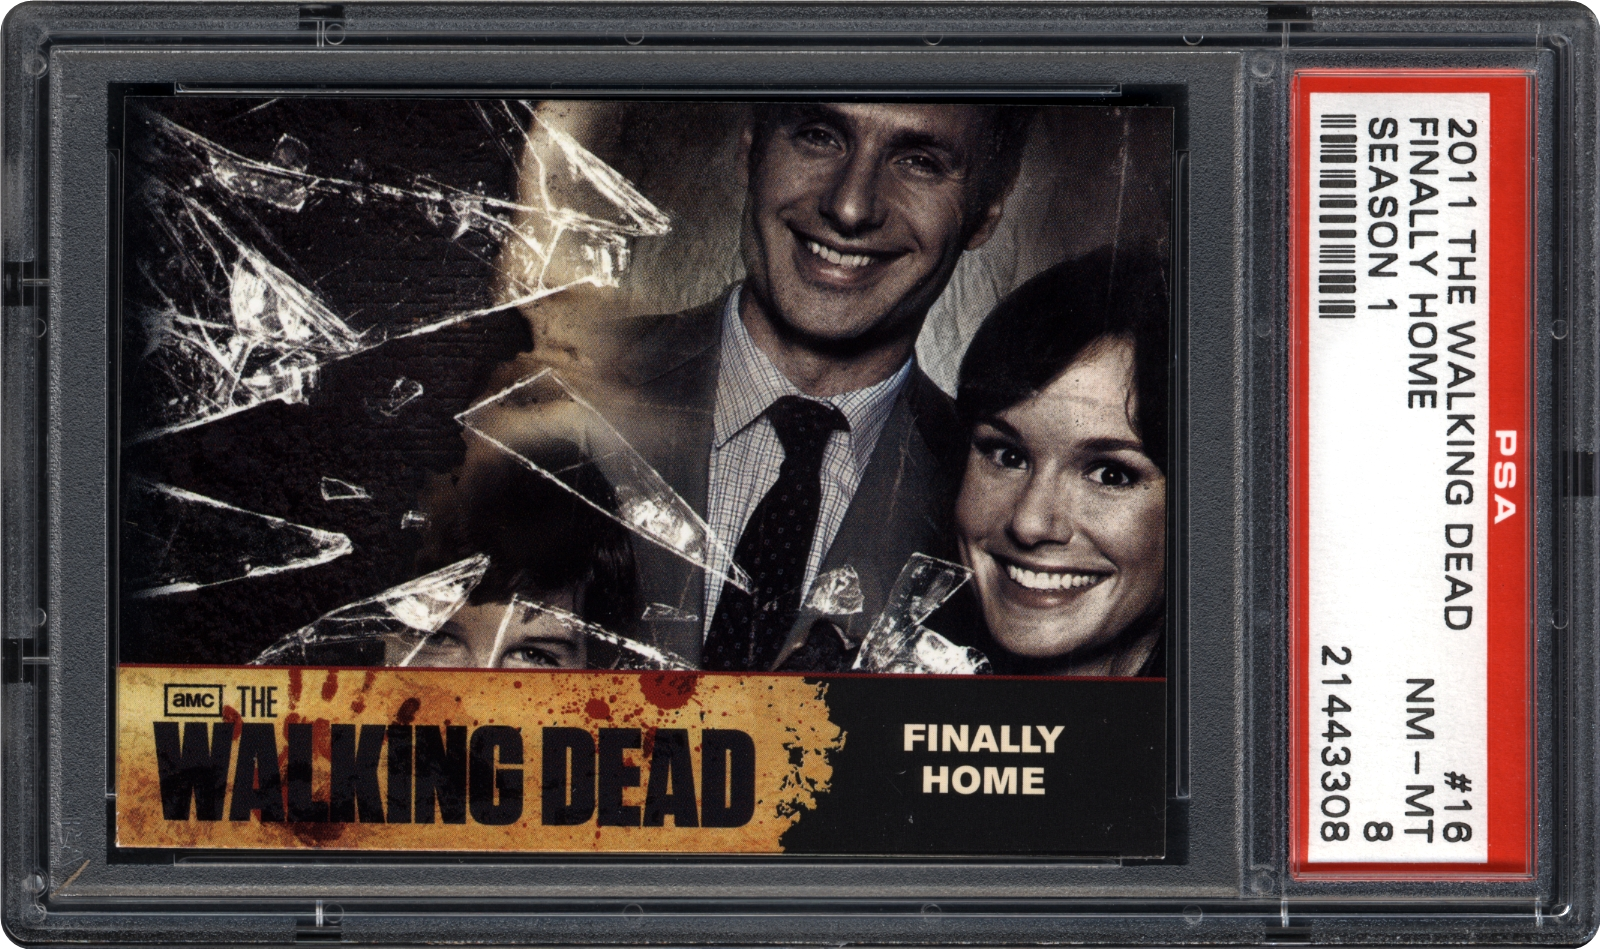 The Walking Dead Season 1 trading card Behind The Scenes Chase Card C01